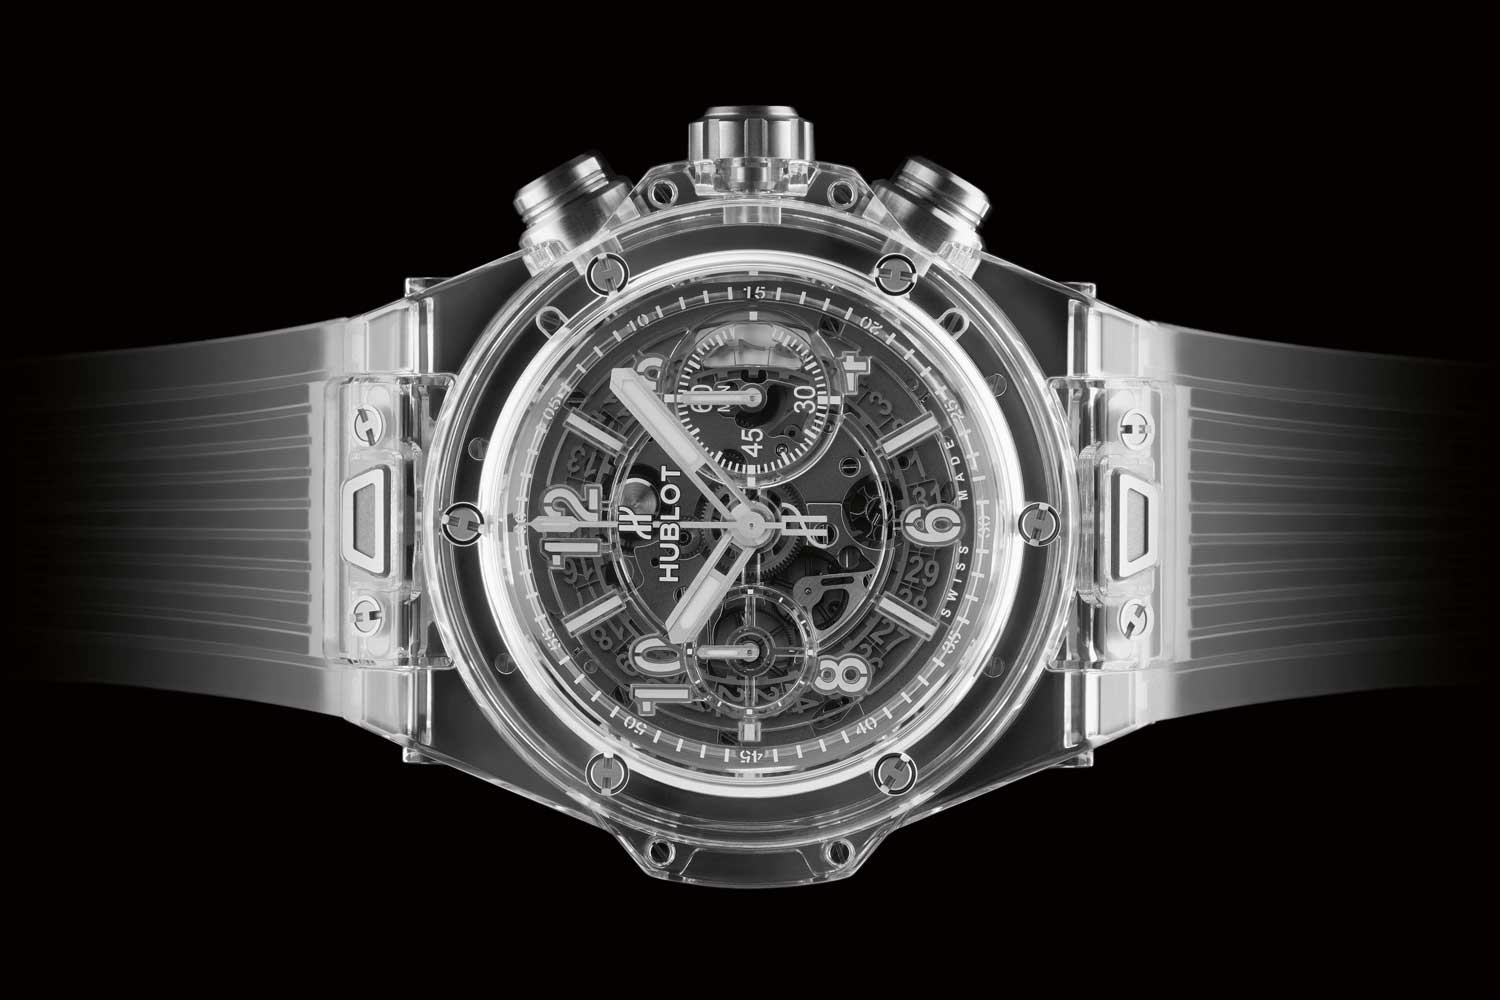 The Big Bang Unico Sapphire, the first clear watch case developed by the brand